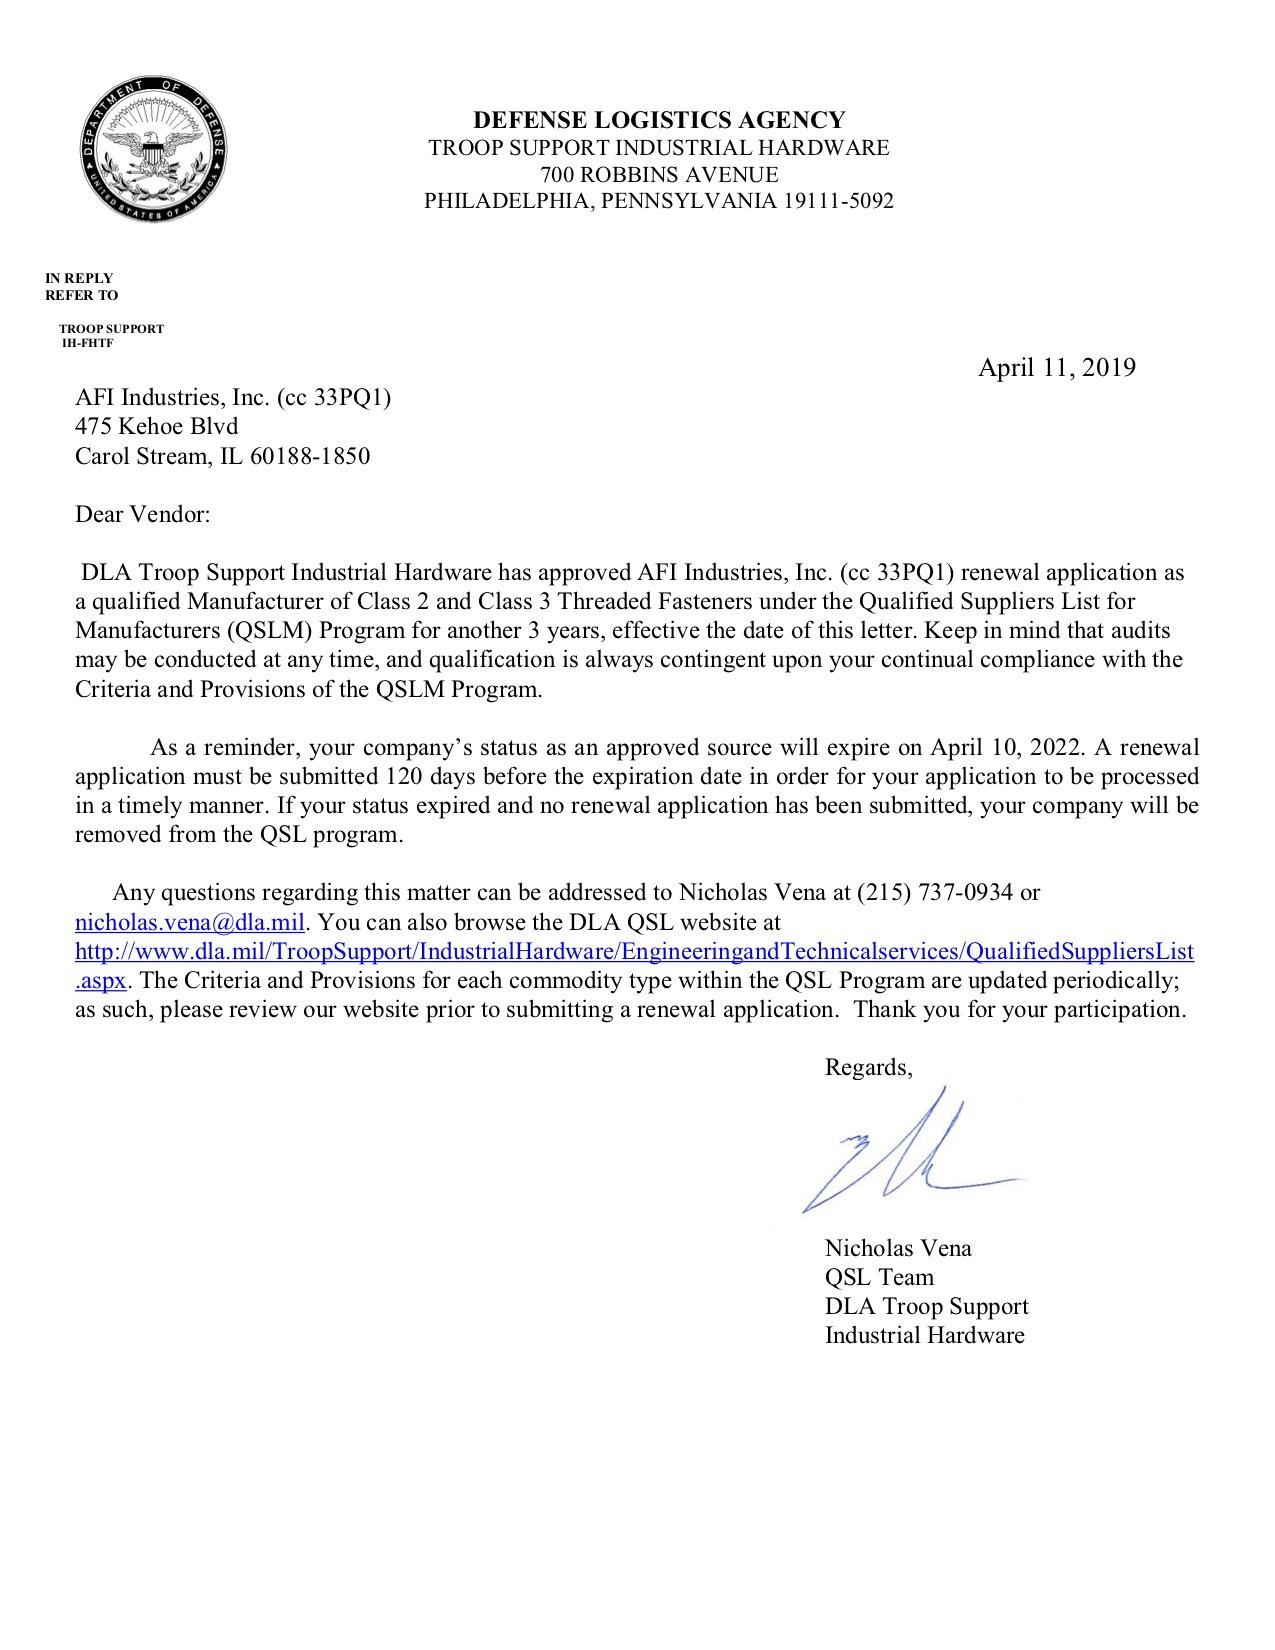 Approval Letter - Reapplication QSLM Class 2 and 3 Expires April 10, 2022